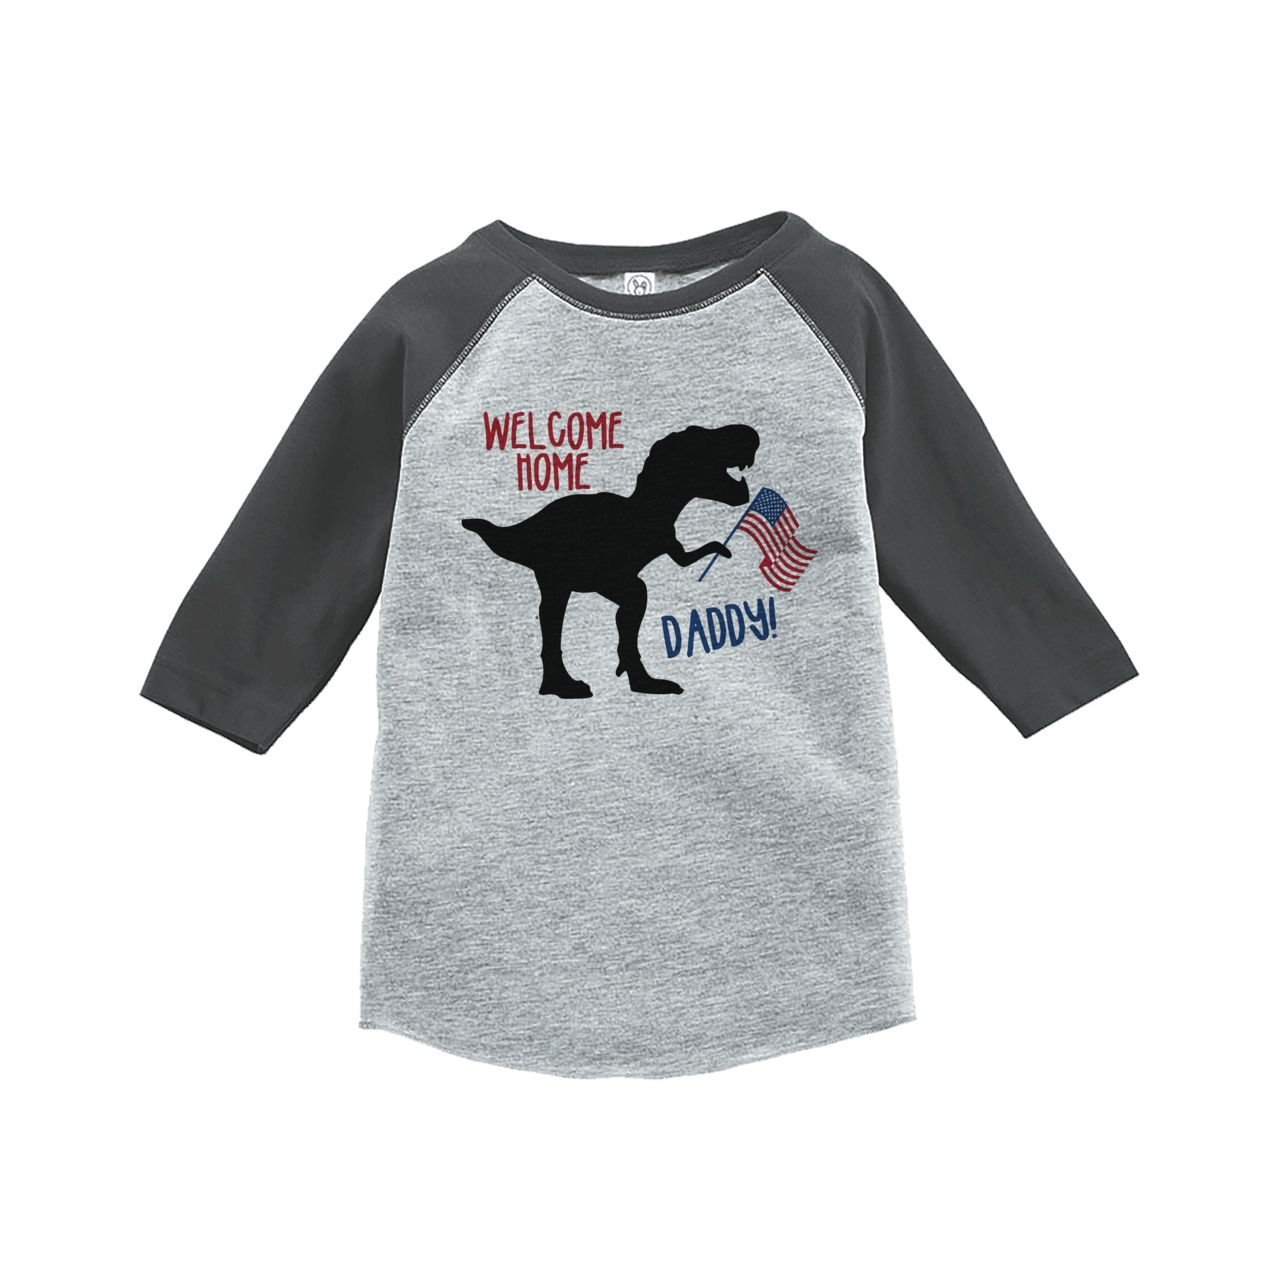 Custom Party Shop Kids Dinosaur 4th of July Grey Baseball Tee 2T